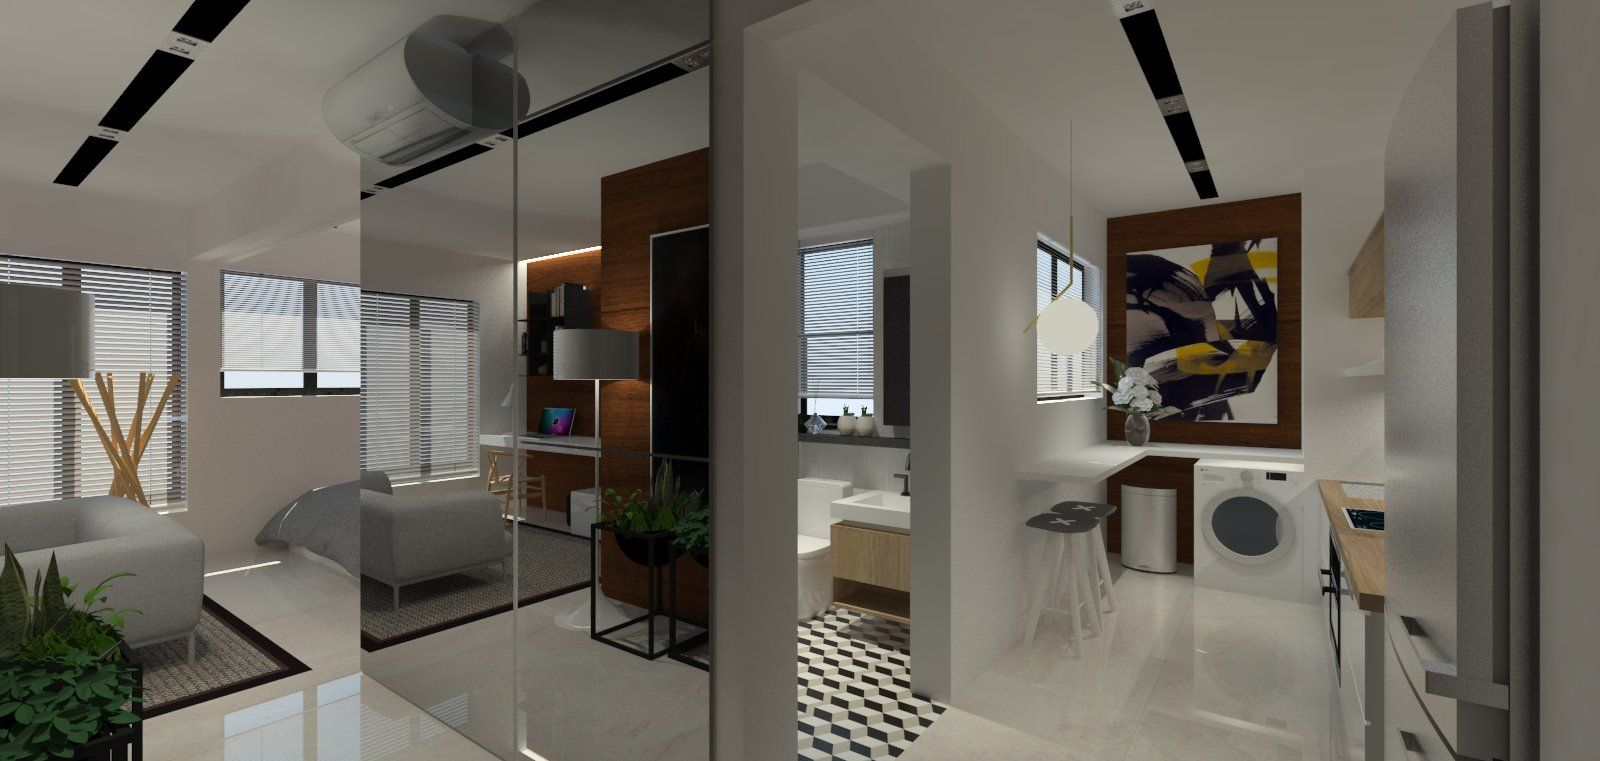 Hdb 2 room bto for singles 47sqm apartment interior for Interior design singapore hdb 5 room flat